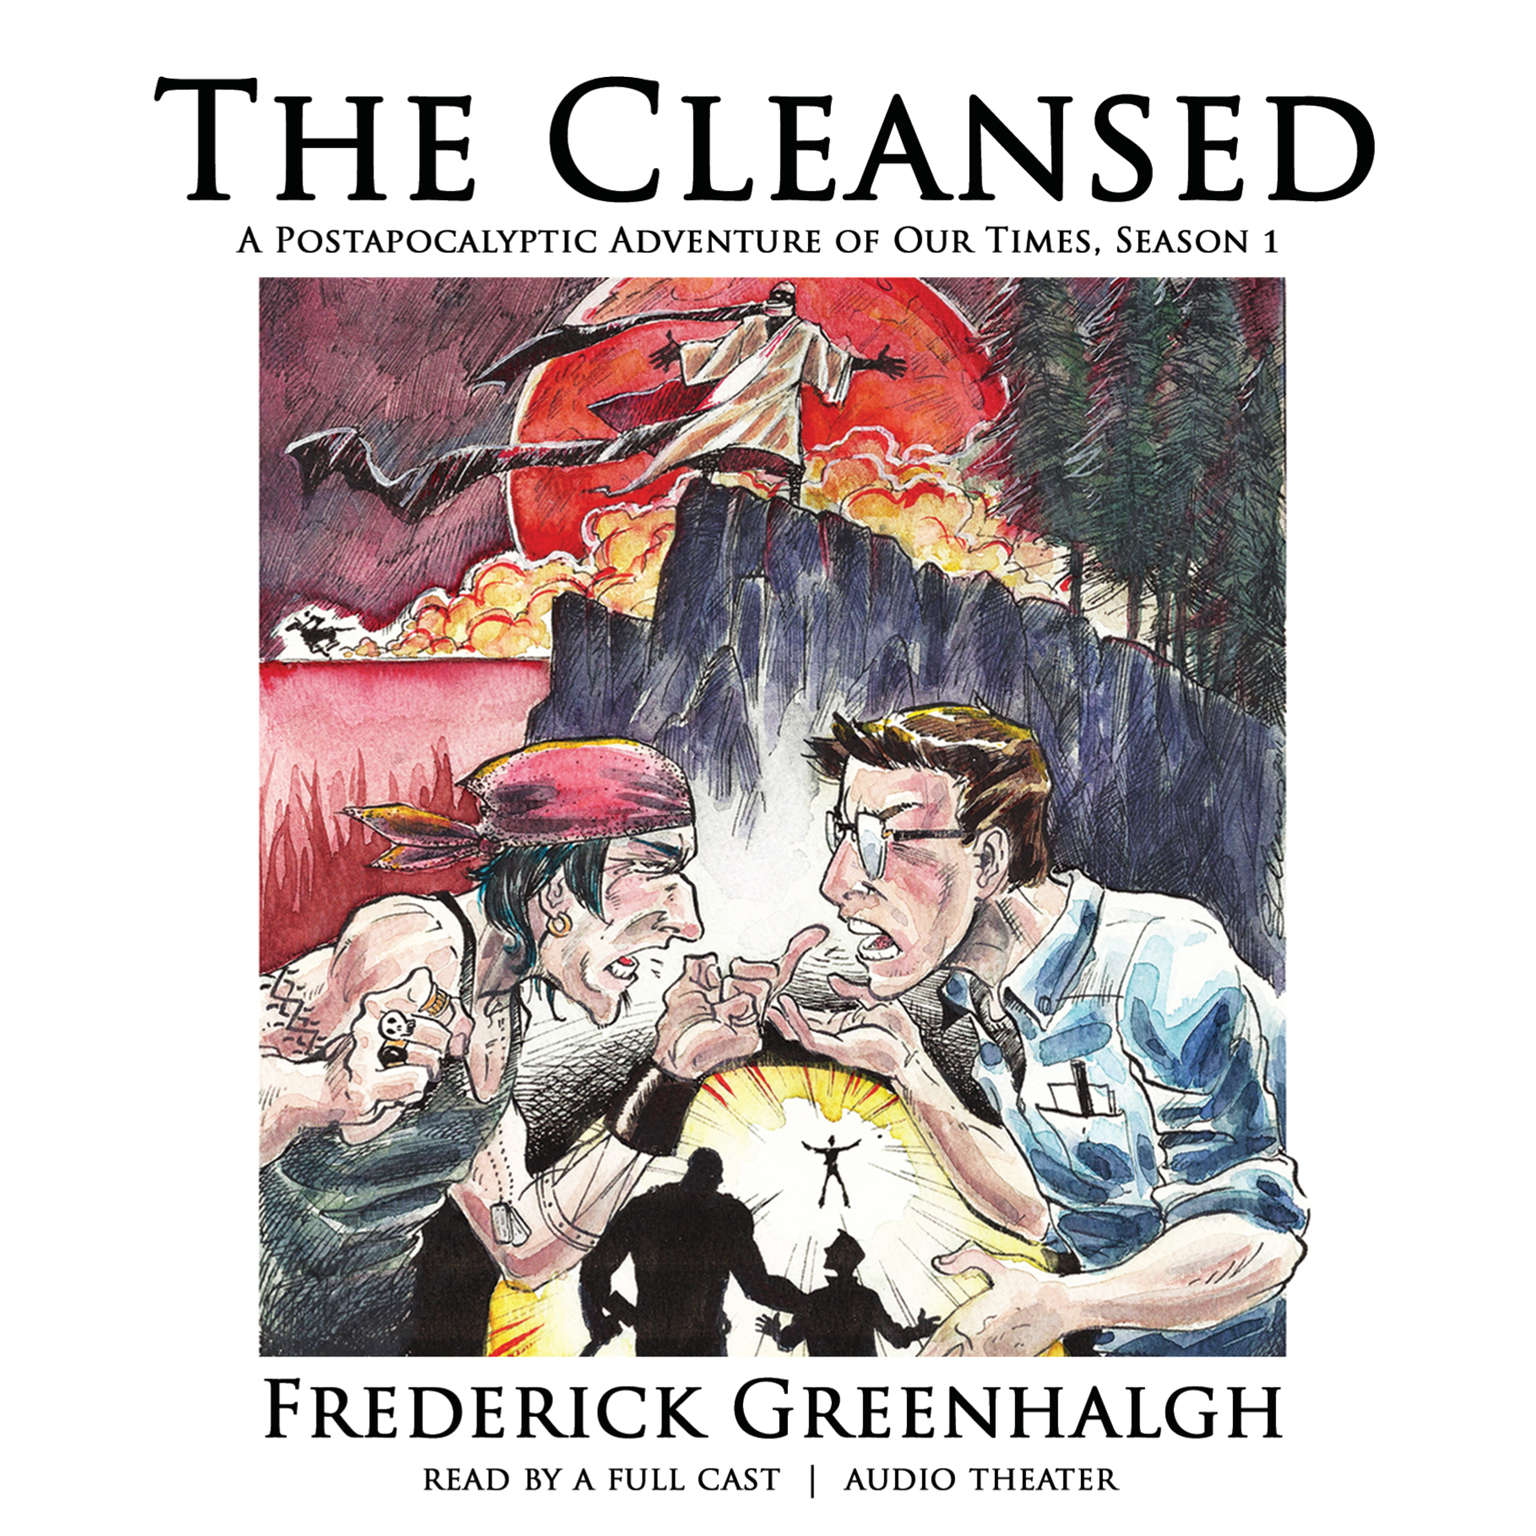 Printable The Cleansed, Season 1: A Postapocalyptic Adventure of Our Times Audiobook Cover Art